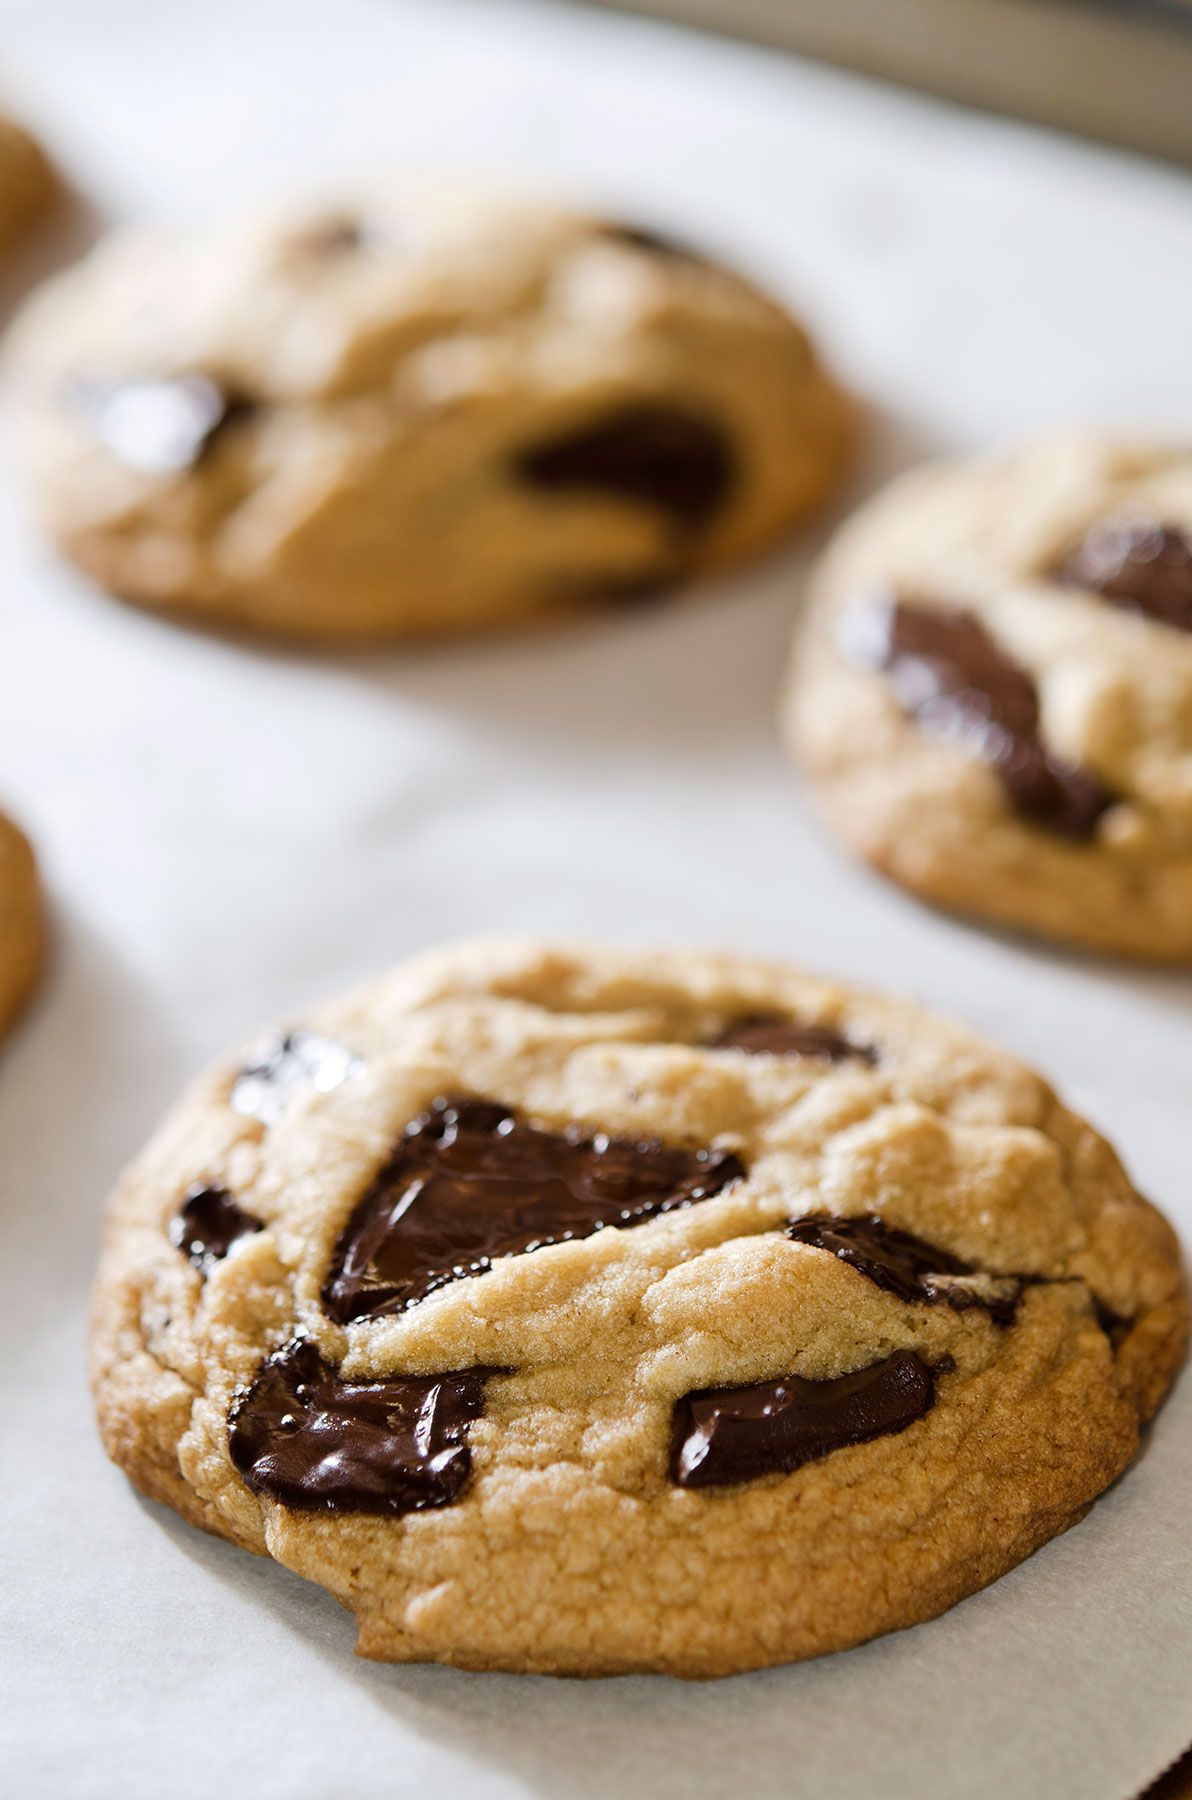 These Cookies Have a Cult Following—But You Can Make Them at Home